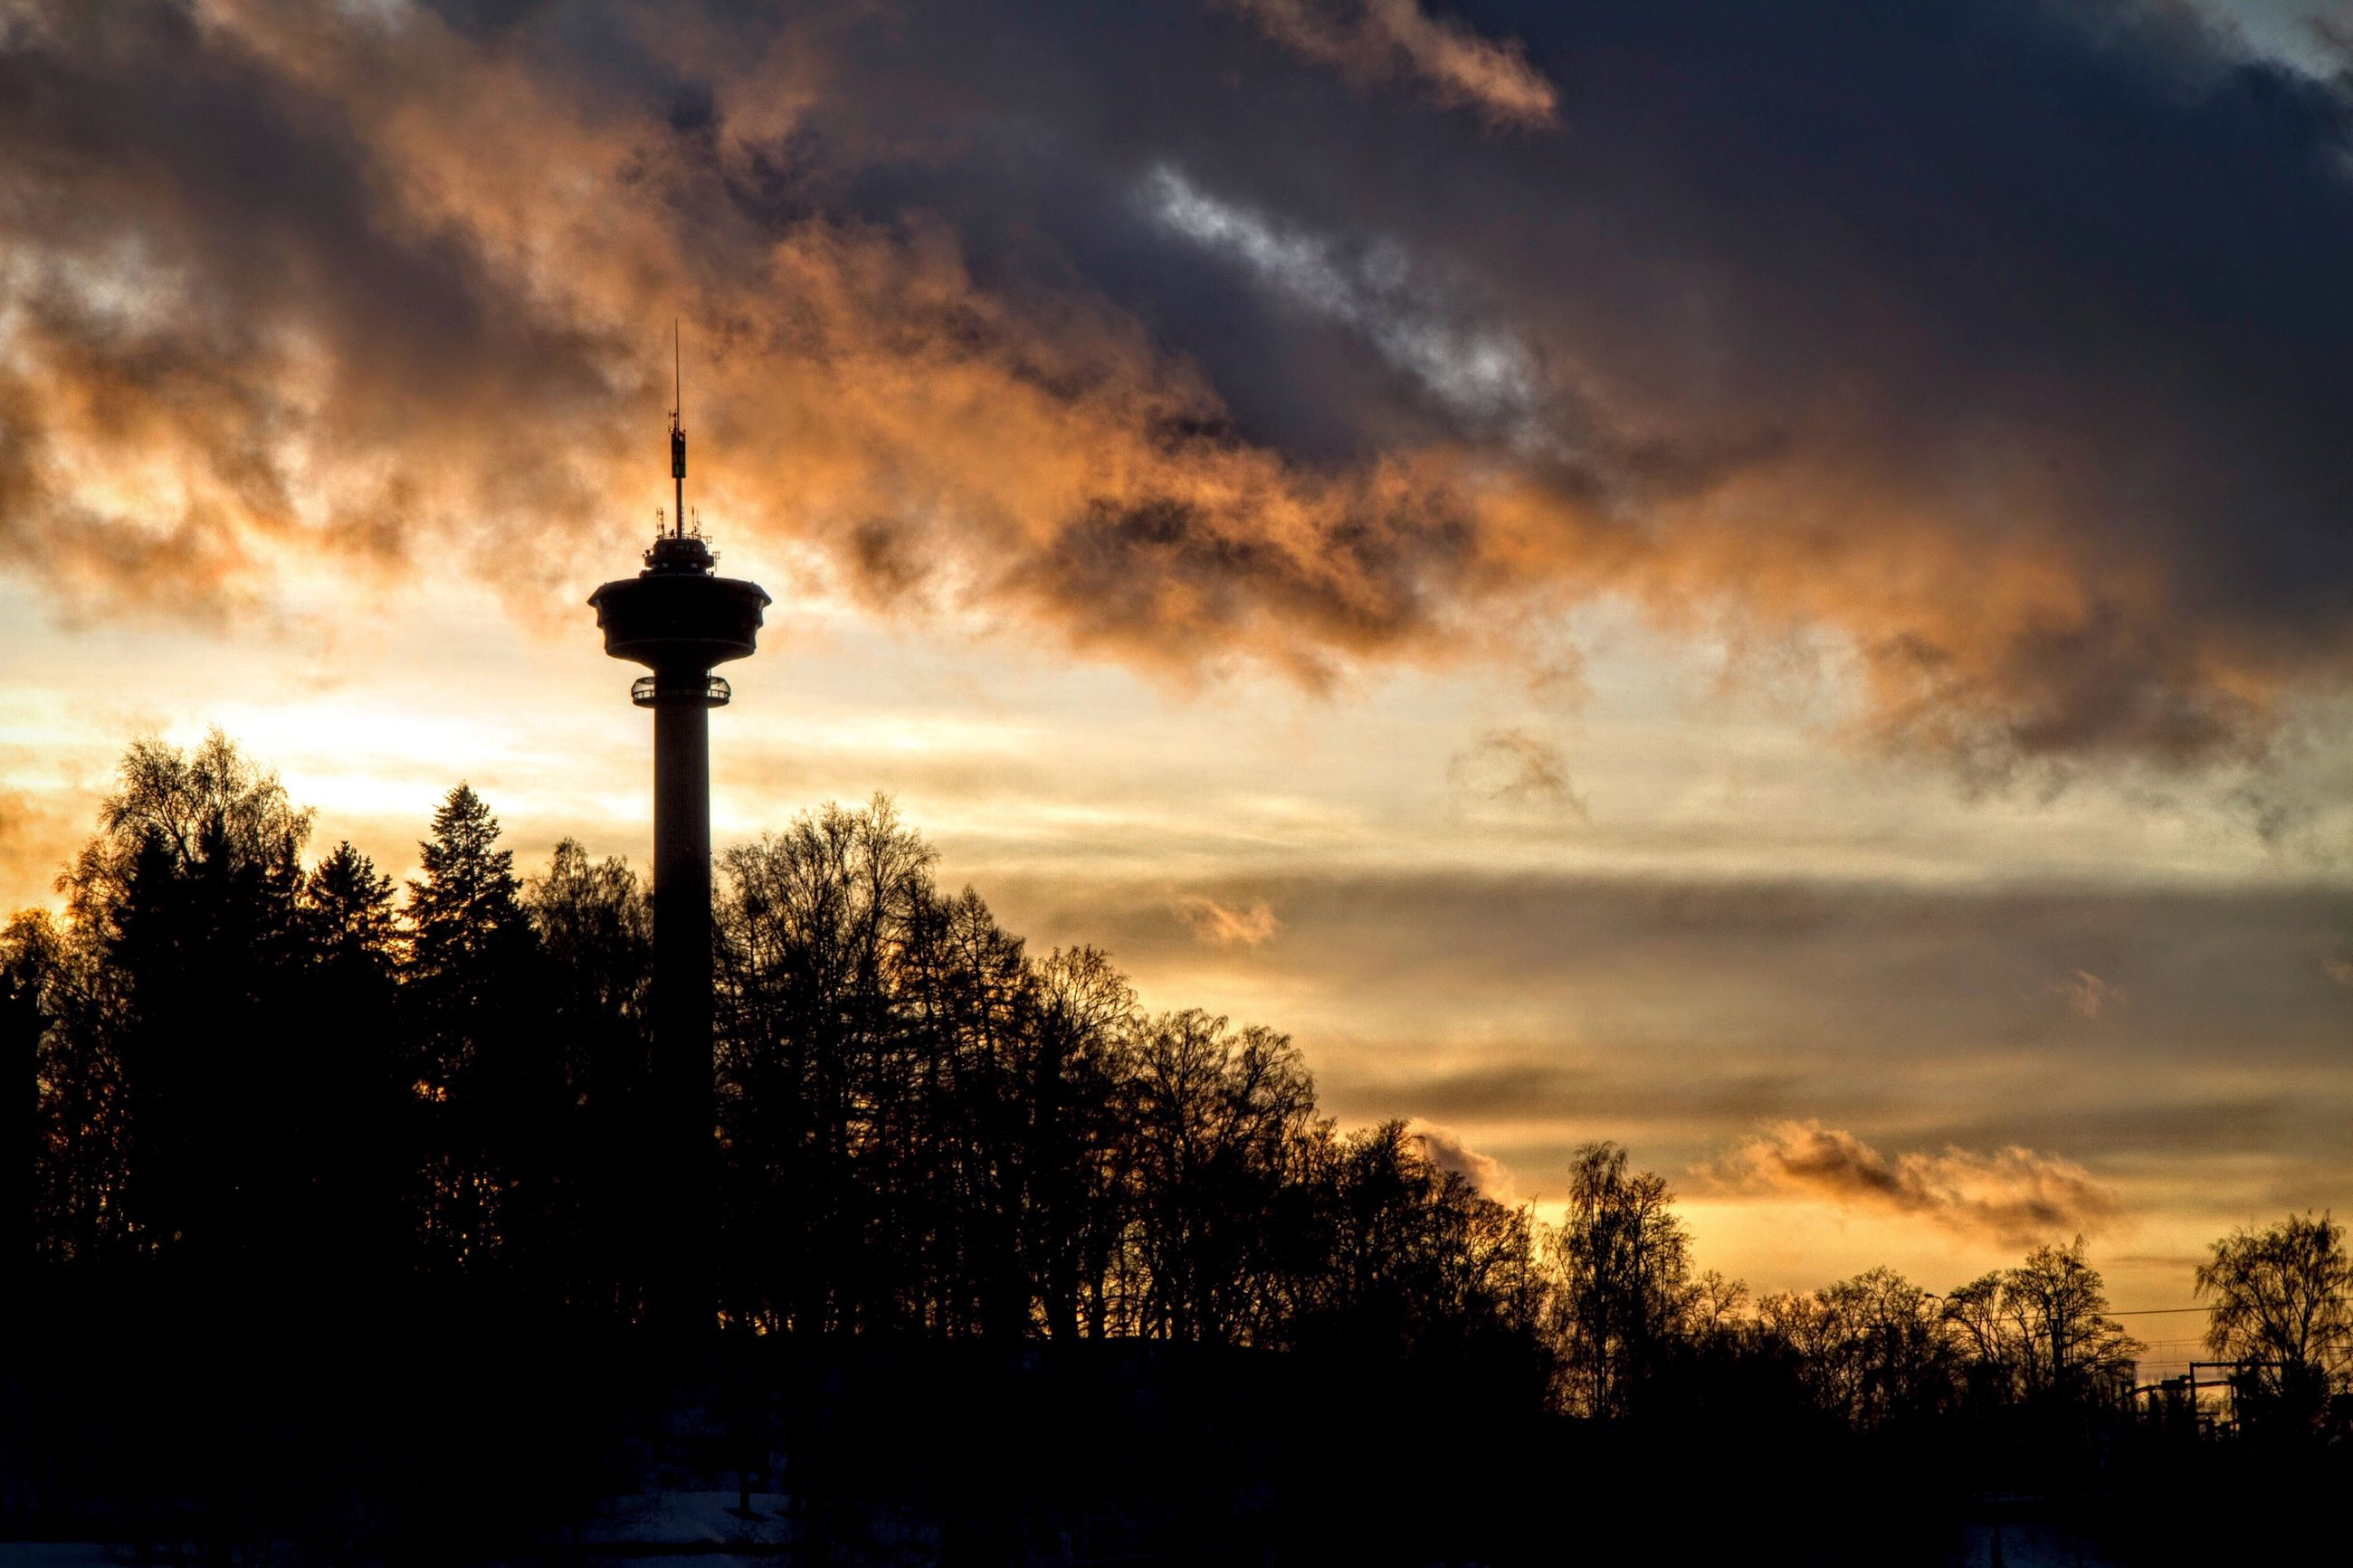 sky, cloud - sky, tree, sunset, silhouette, communications tower, cloudy, street light, tower, low angle view, built structure, cloud, architecture, dusk, building exterior, tall - high, dramatic sky, overcast, weather, nature